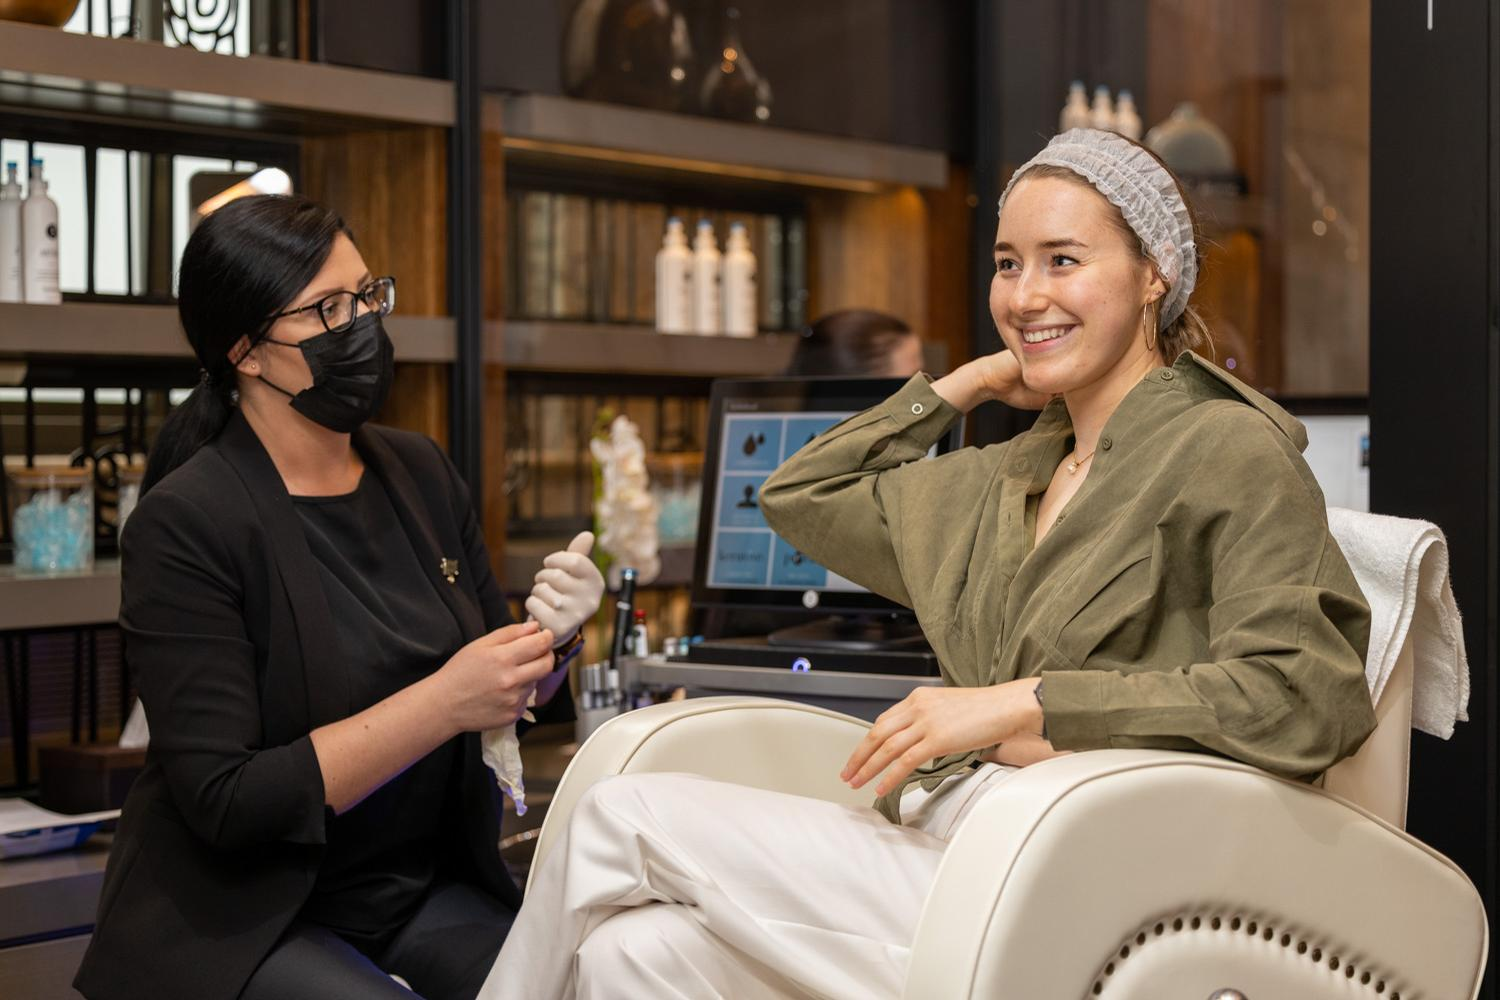 A happy guest after experiencing their first HydraFacial at Sofitel London St James / HydraFacial, 2021